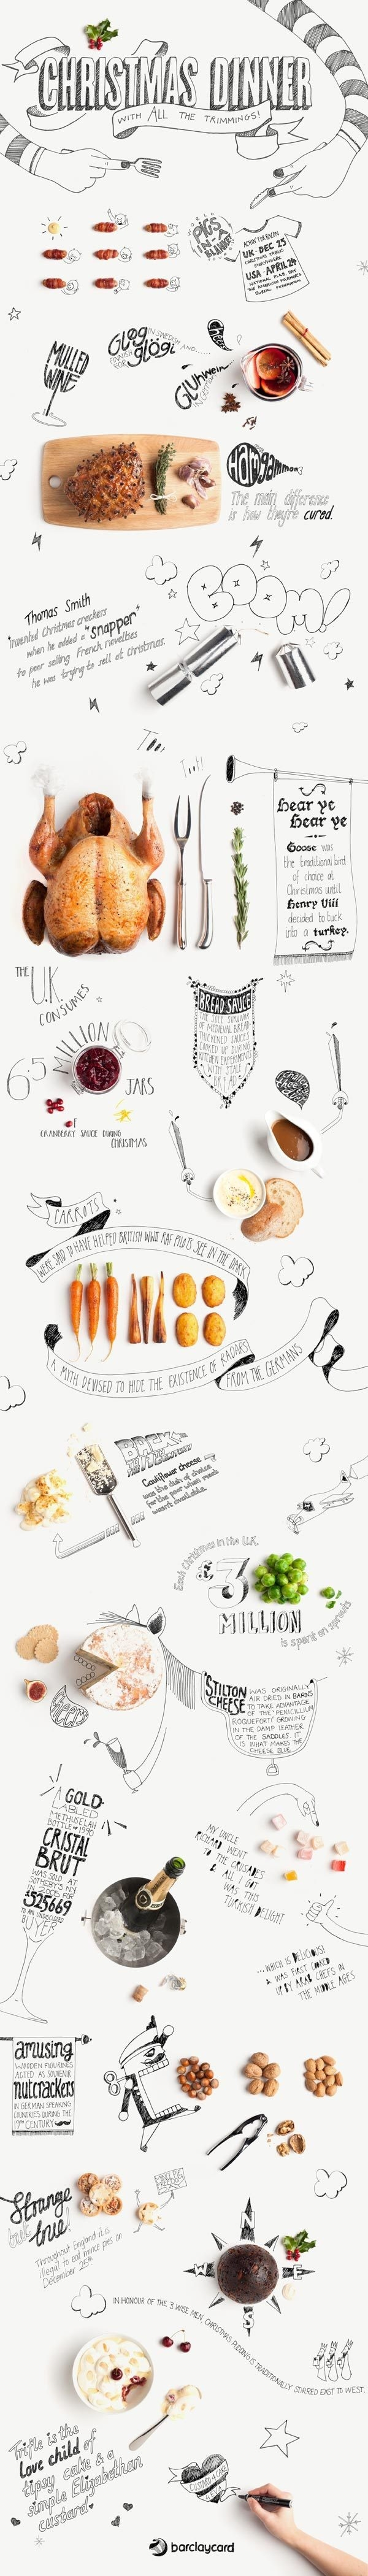 Barclays Card Christmas Infographic #handwriting #infographic #photography #food